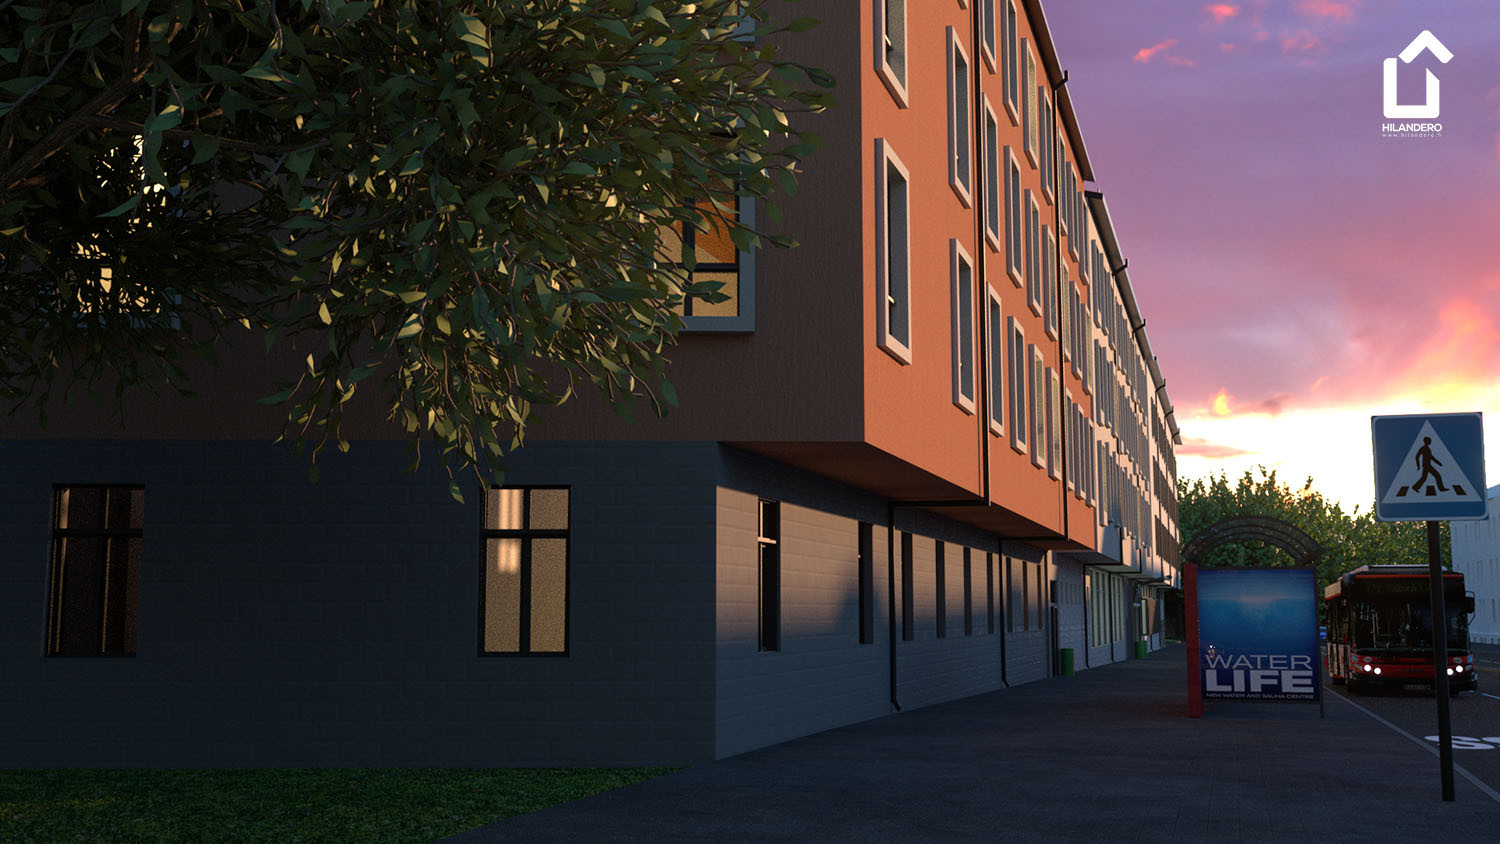 Hilandero Linkoping modular building